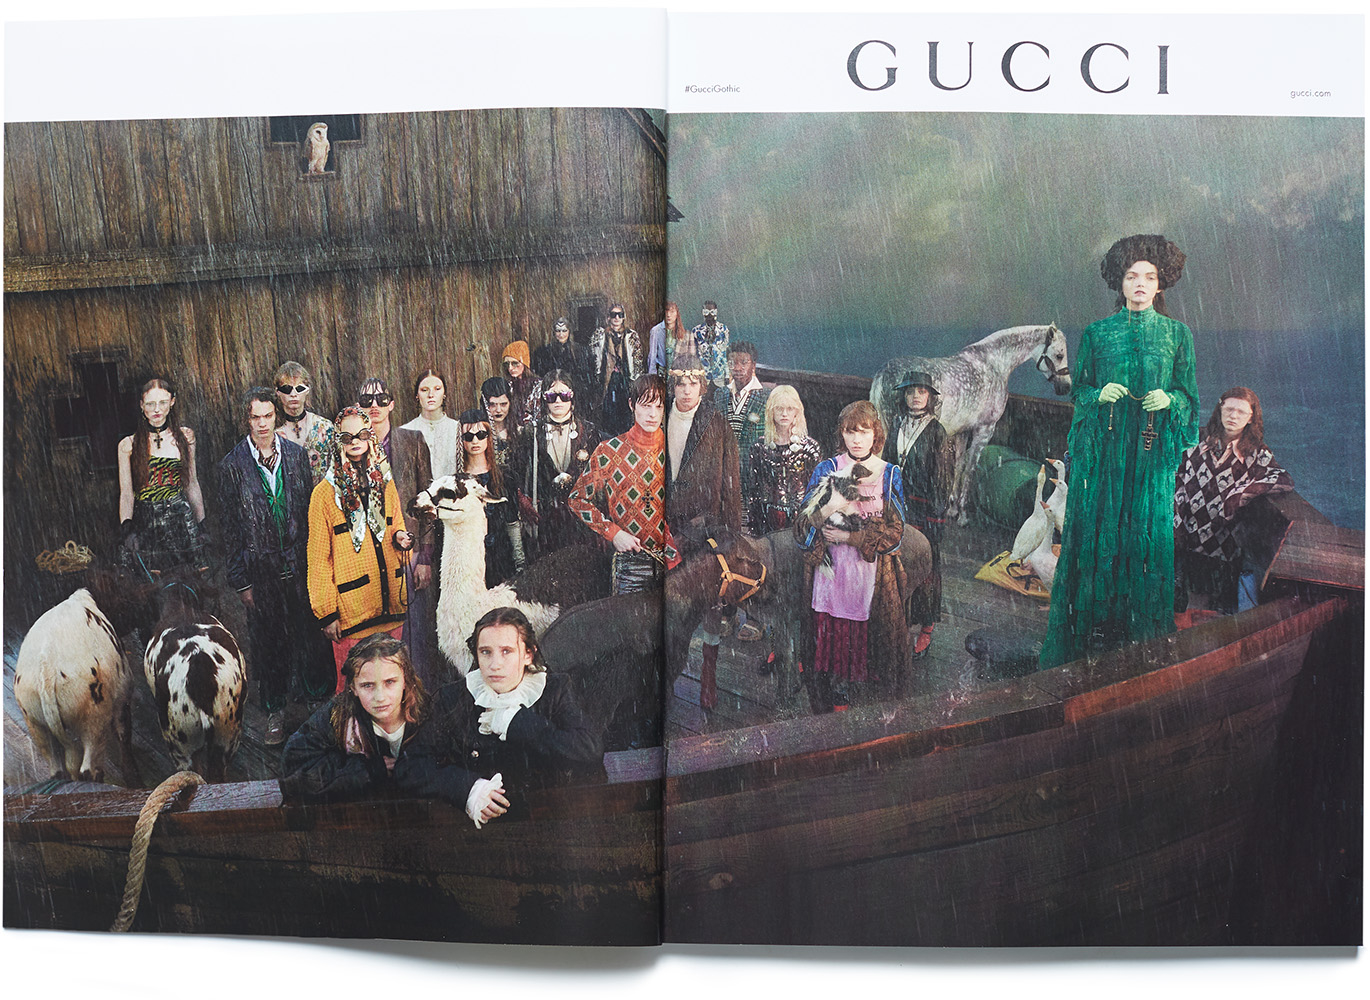 45343cefb3 Gucci Cruise 2019 Campaign with Leon R and Tom A - Tomorrow Is Another Day